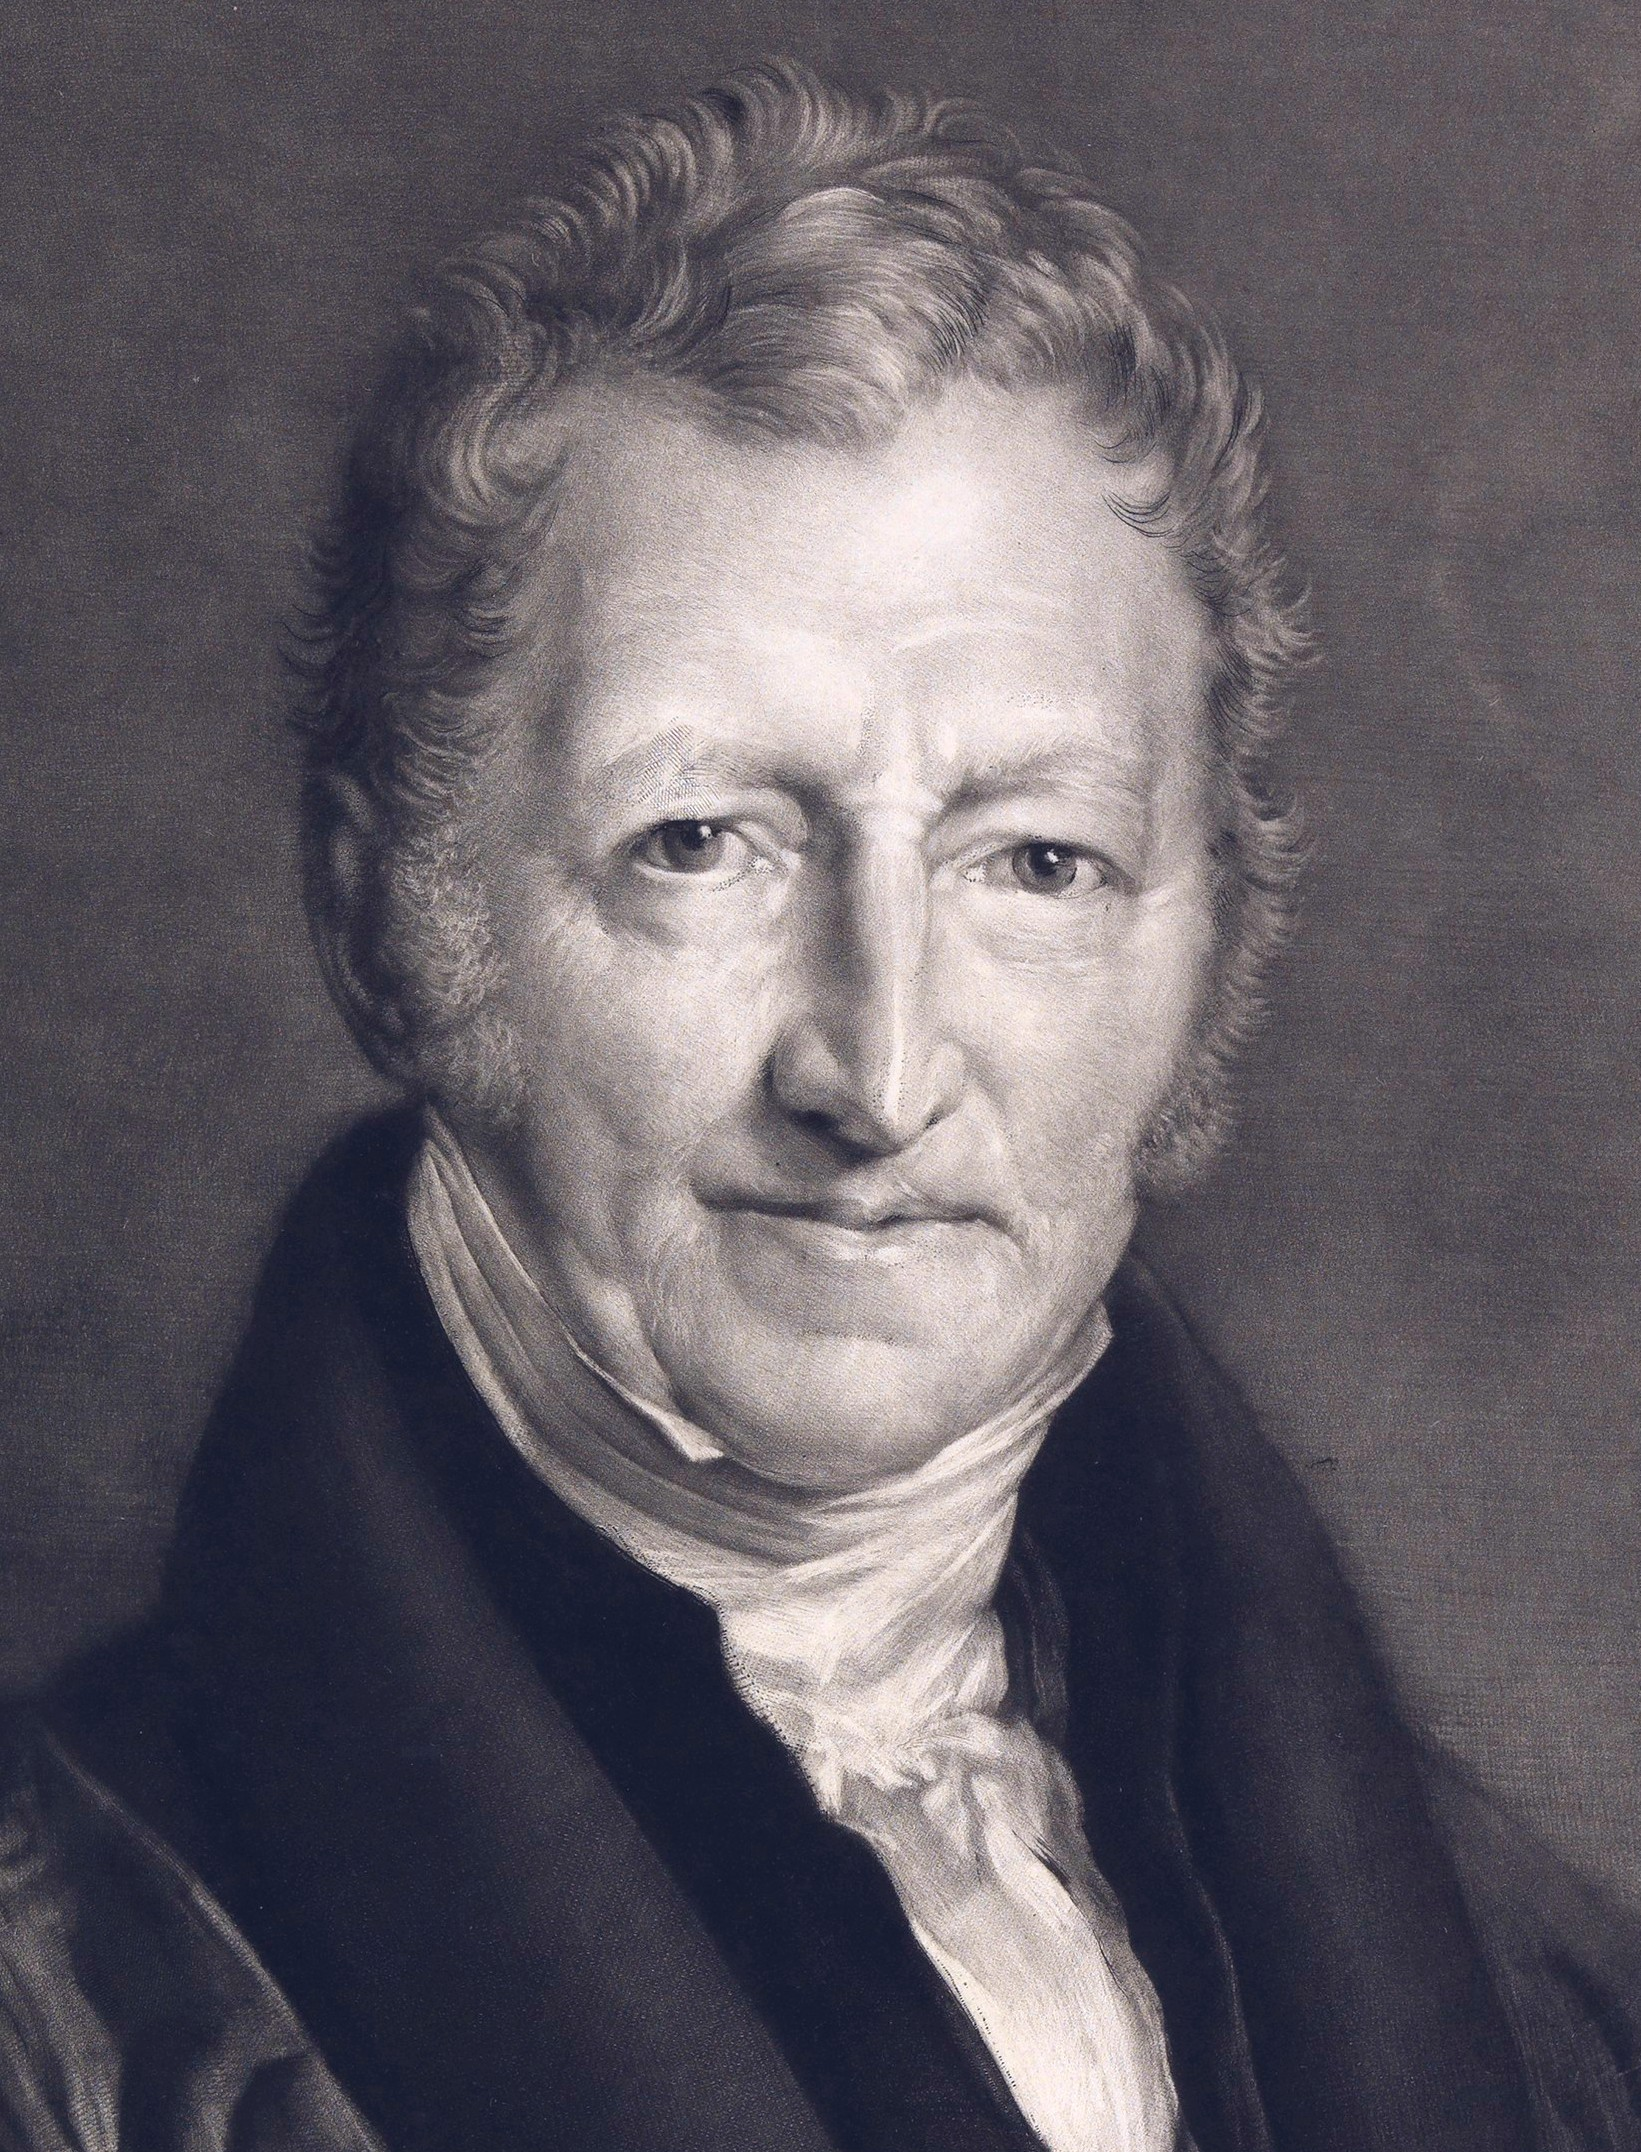 Malthus cautioned law makers on the effects of...